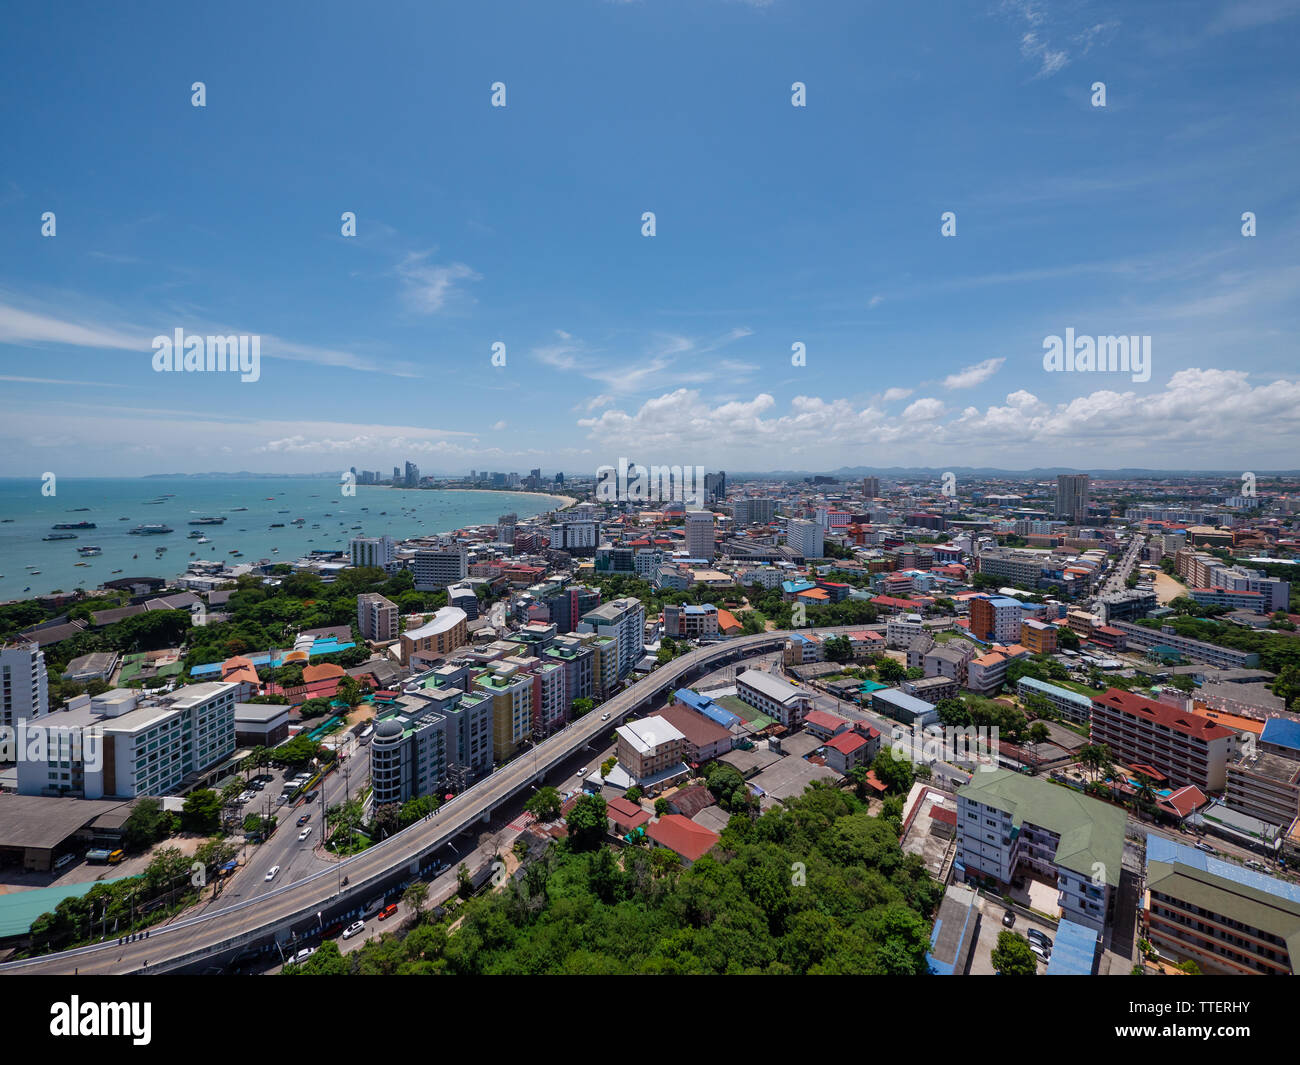 Pattaya, the popular resort city in Thailand, famous for its beaches and its many bars and redlight districts. Stock Photo